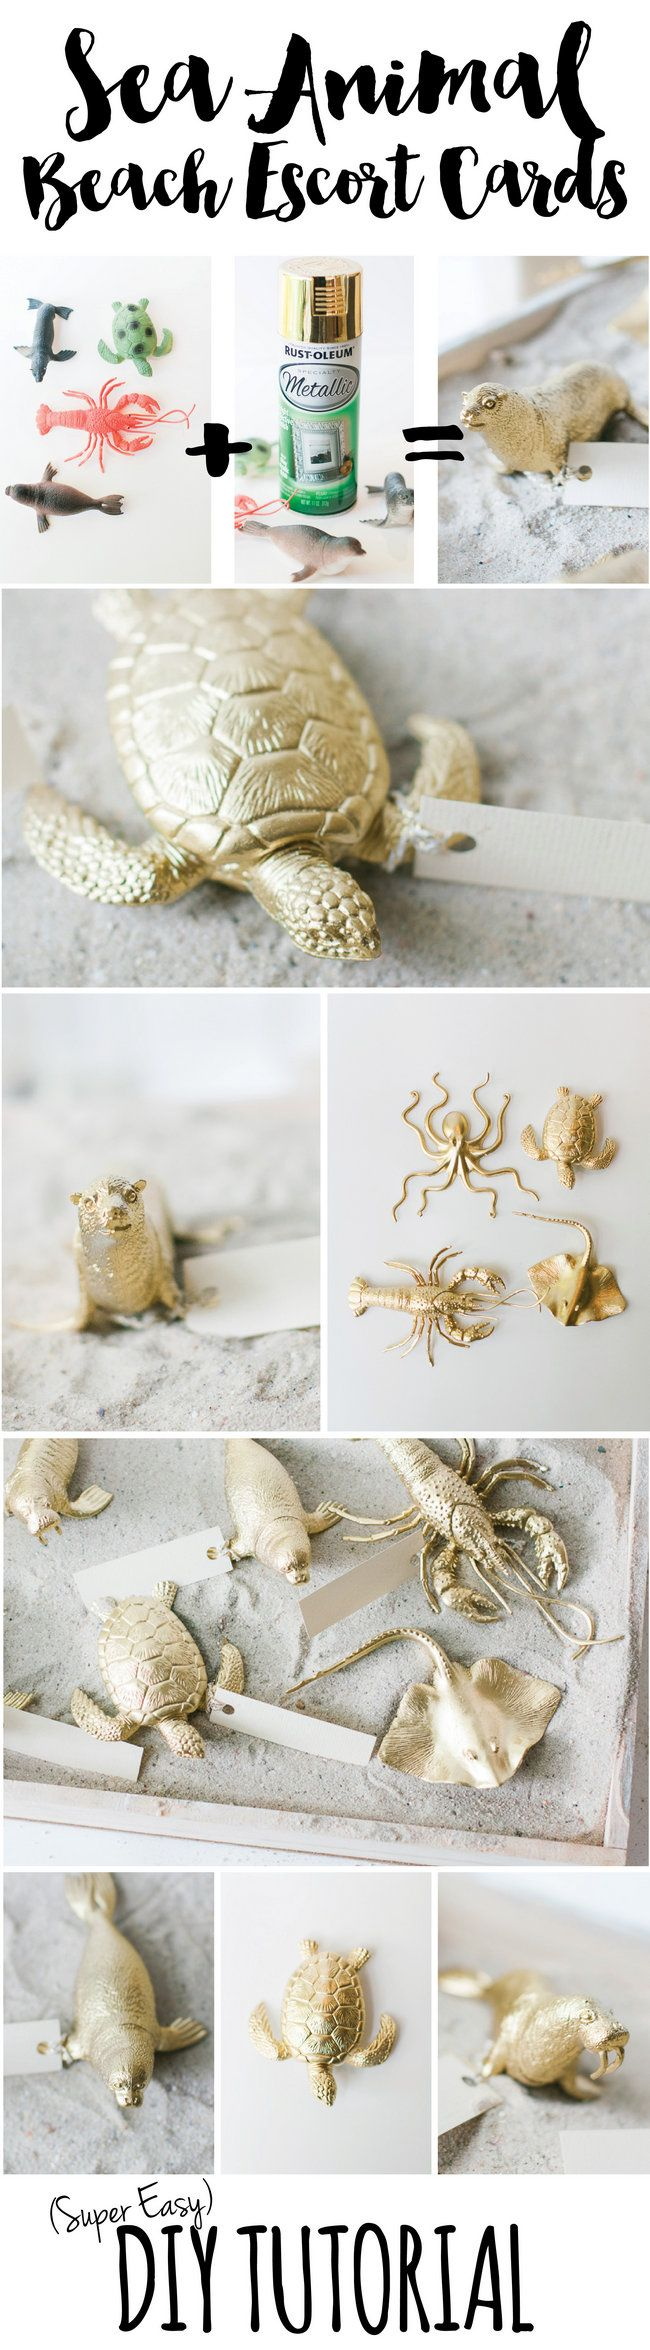 325 best Beach Wedding images on Pinterest | Sailor wedding ...